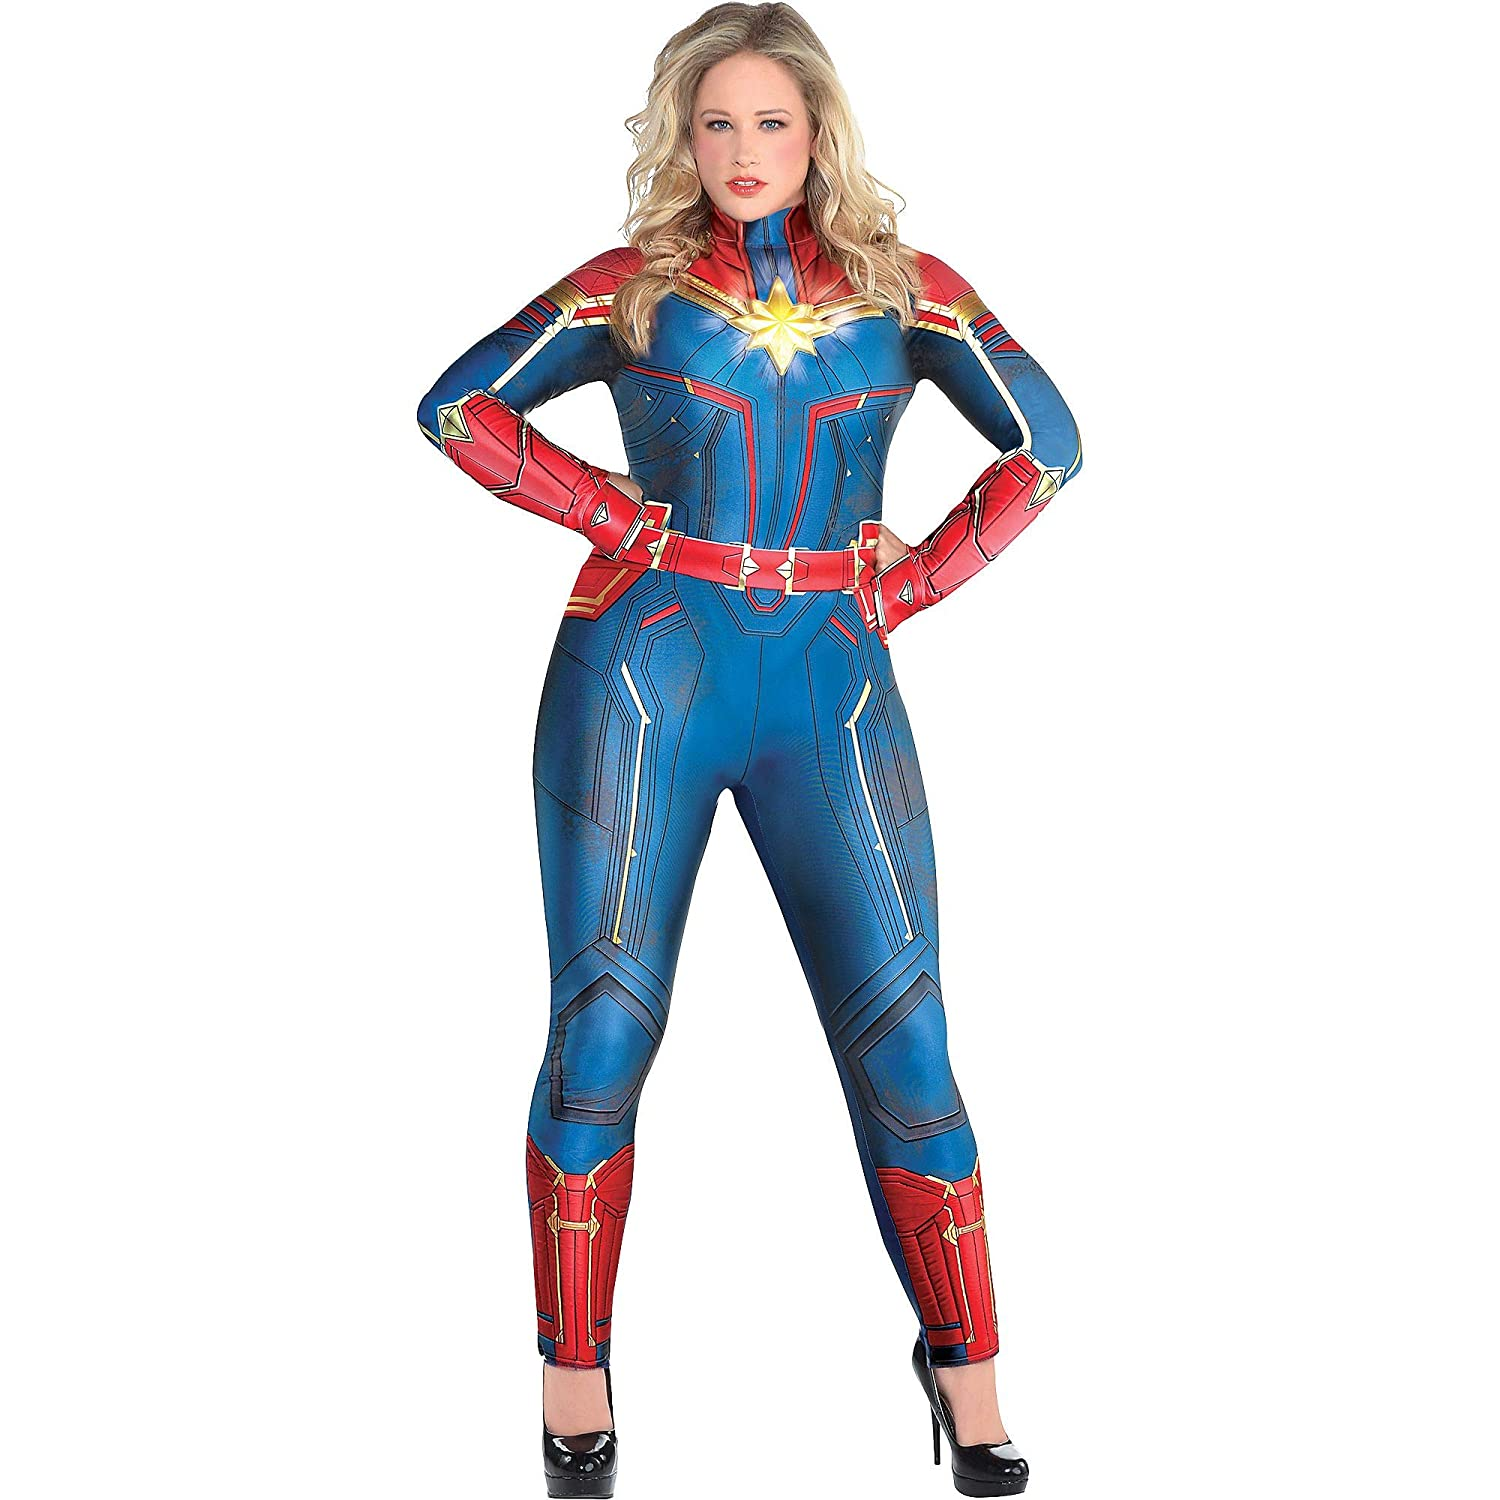 Light-Up Captain Marvel Halloween Costume for Women